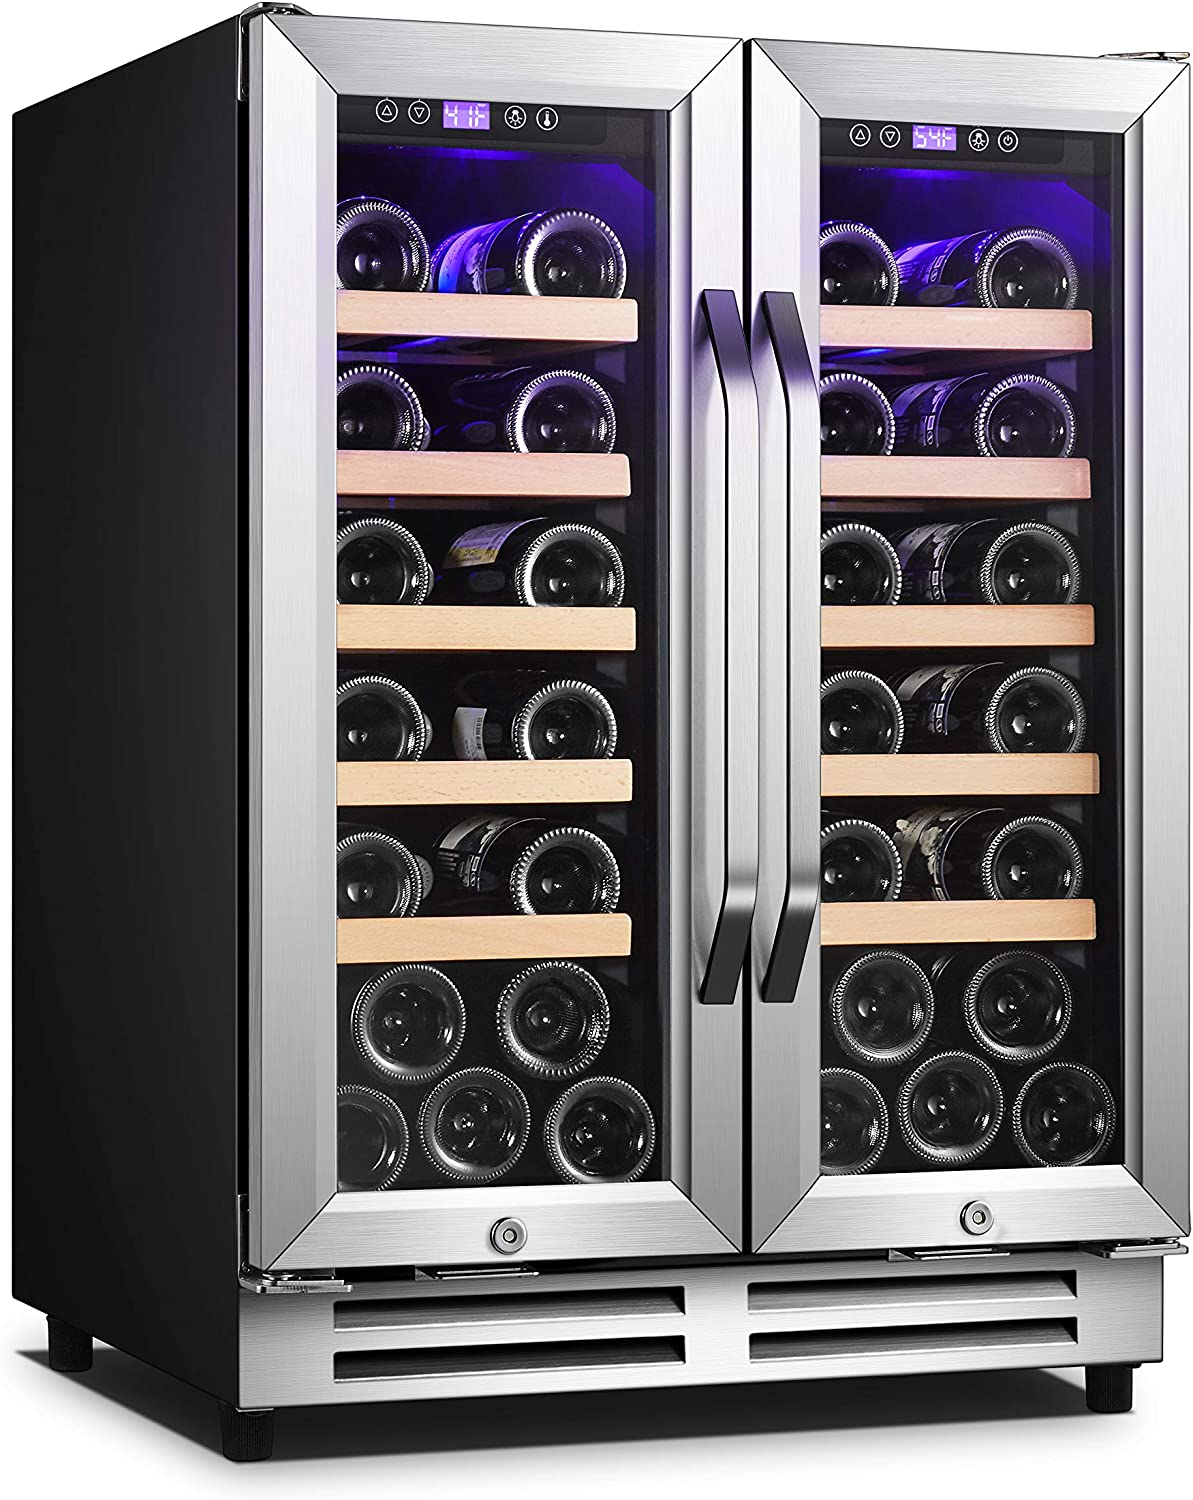 Karcassin 24 inch Wine Cooler Refrigerator – Compressor Wine Chiller – Dual Temp Zones wine fridge – Stores upto 36 Bottles